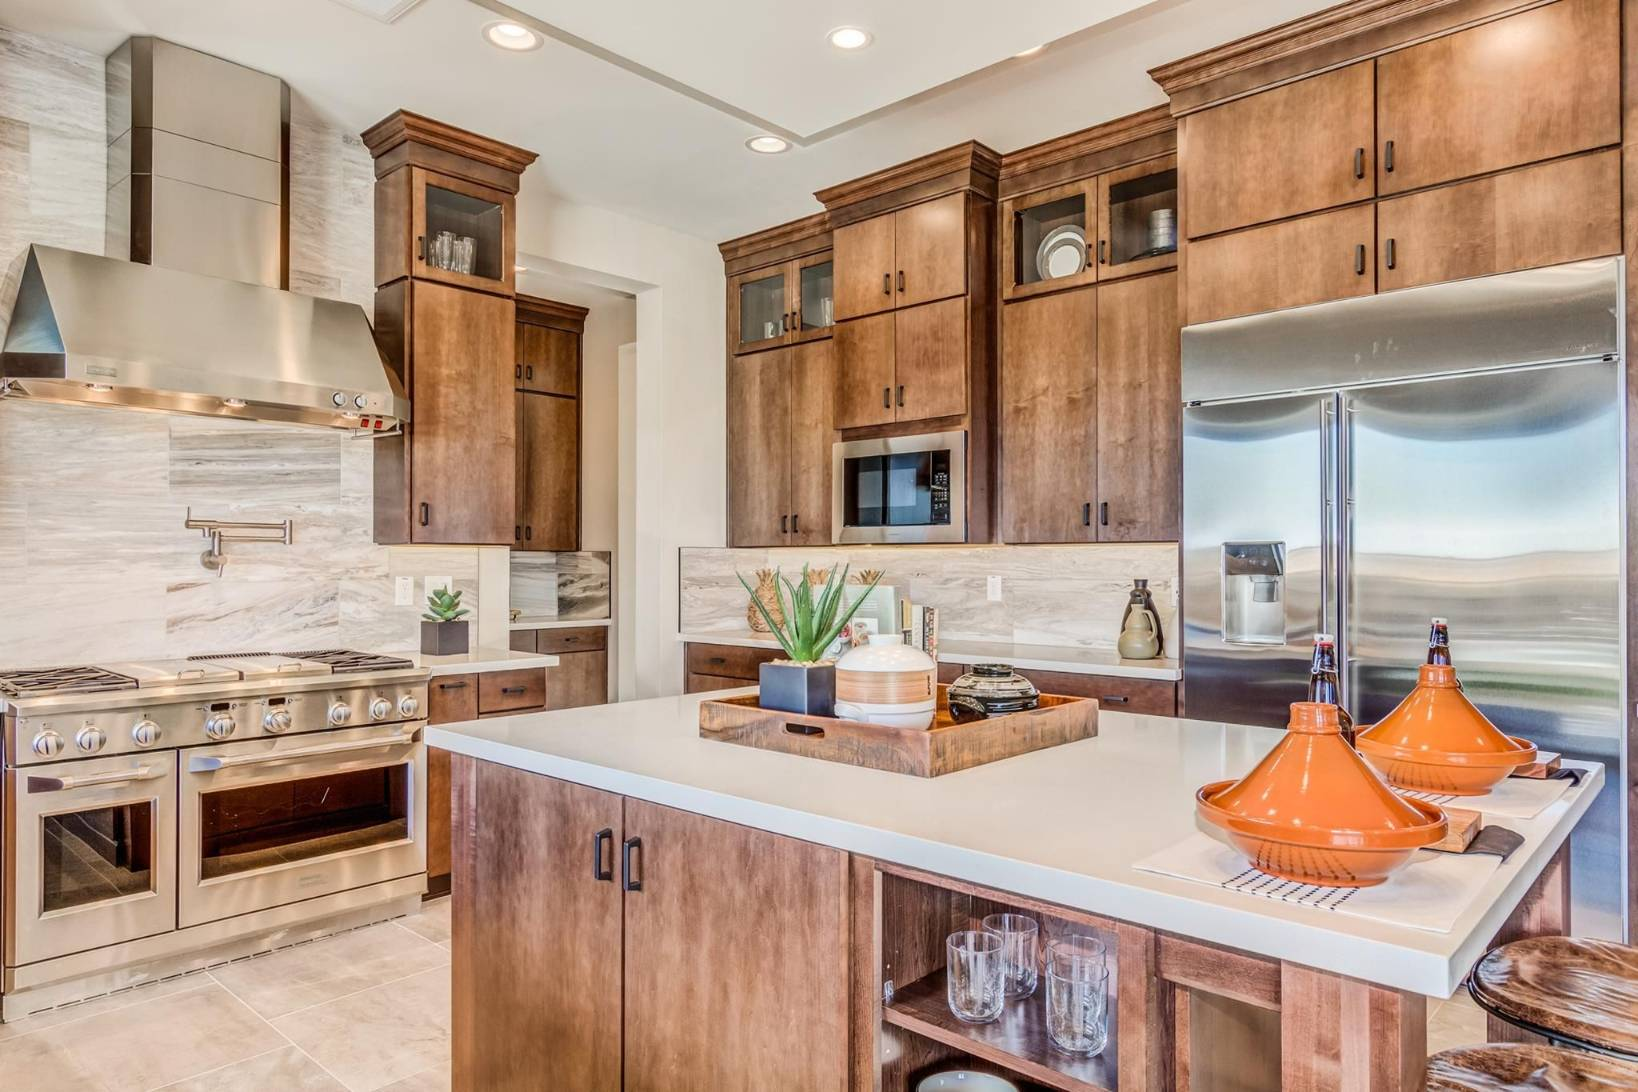 The Best Wood For Kitchen Cabinets Types Of Natural Wood In Kitchen Cabinets